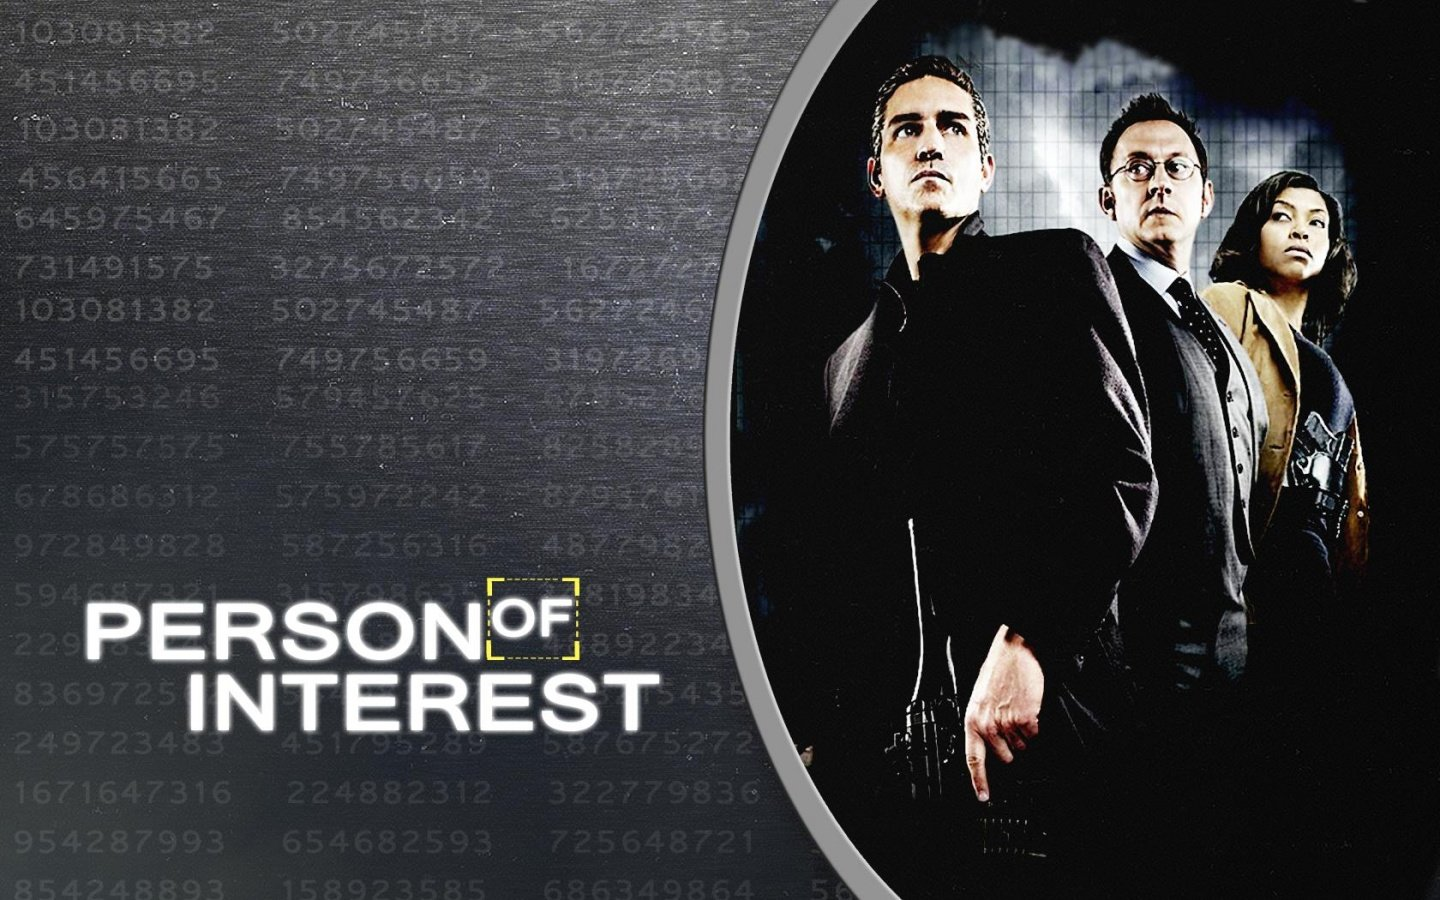 Person Of Interest Poi Wallpapers 1440x900 Desktop Backgrounds